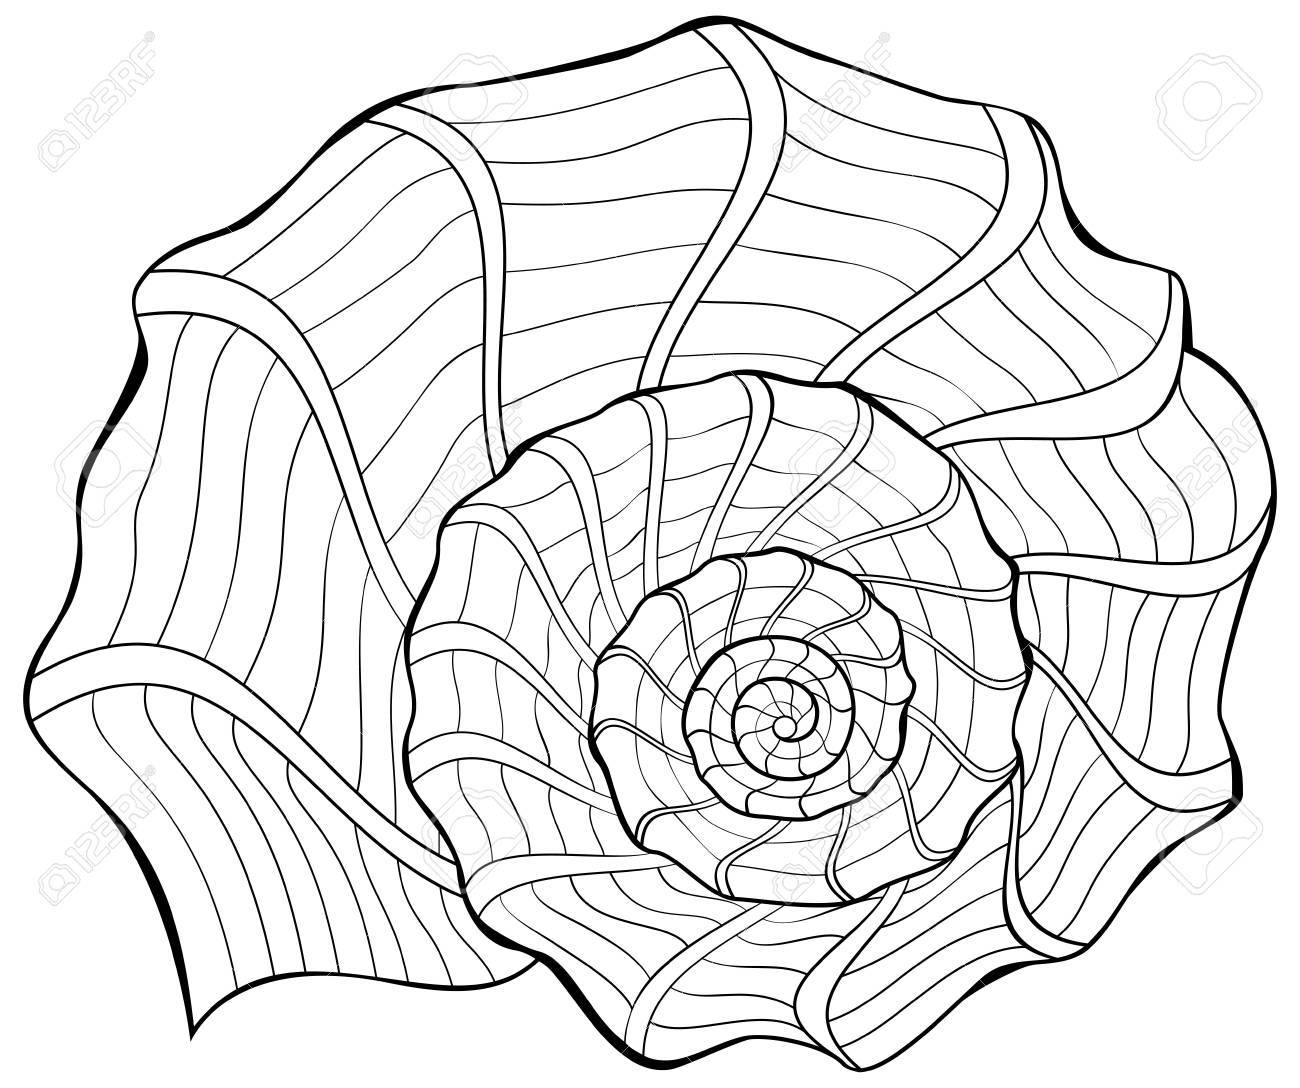 Black and white illustration of a shell for coloring. Worksheet for children and adults. Vector image. - 86999819